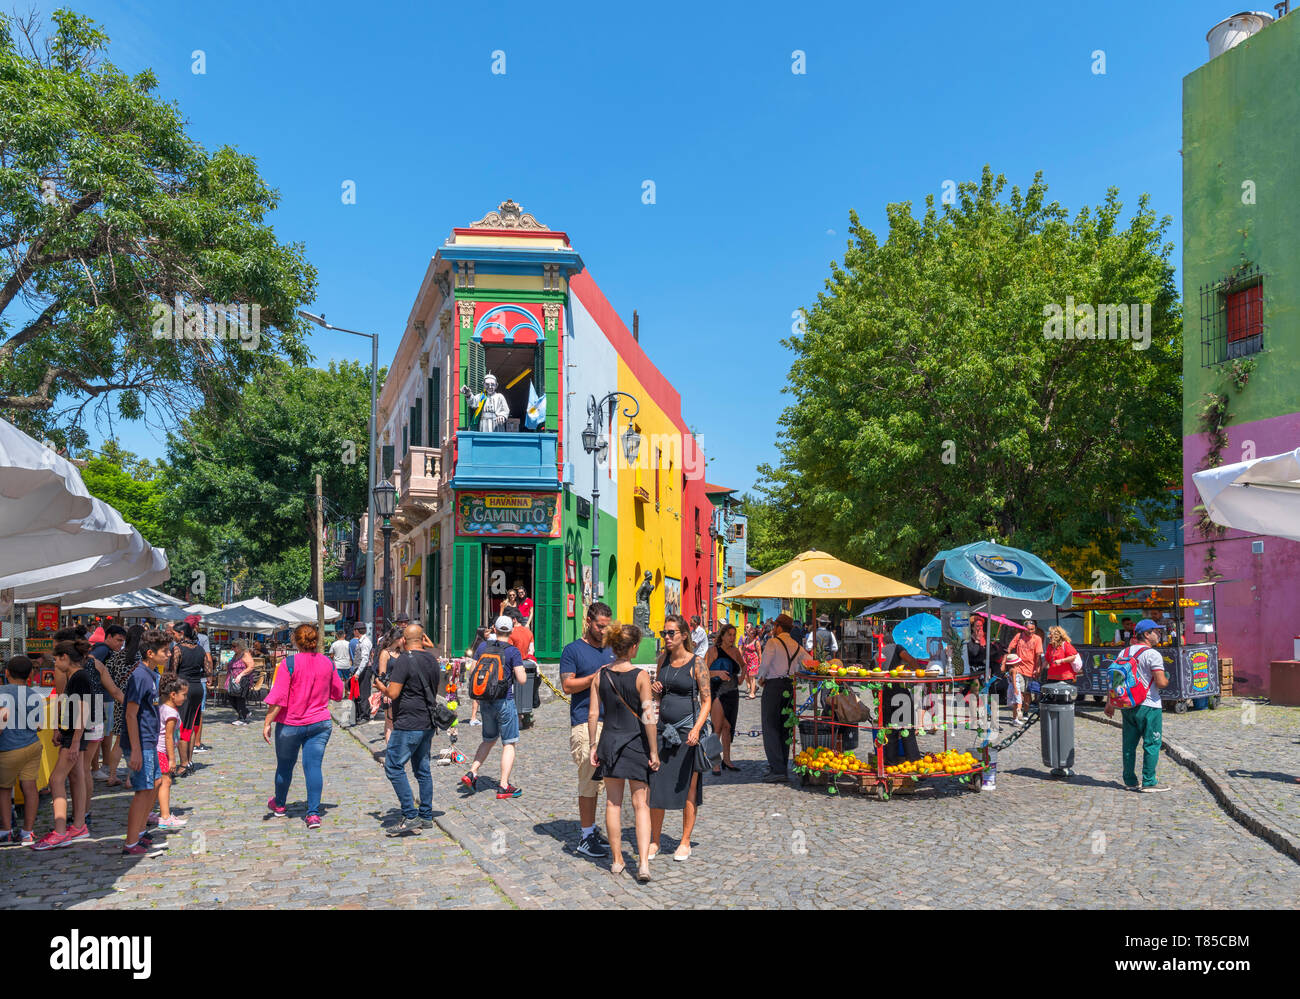 El Caminito, a colourful street in La Boca district of Buenos Aires, Argentina - Stock Image